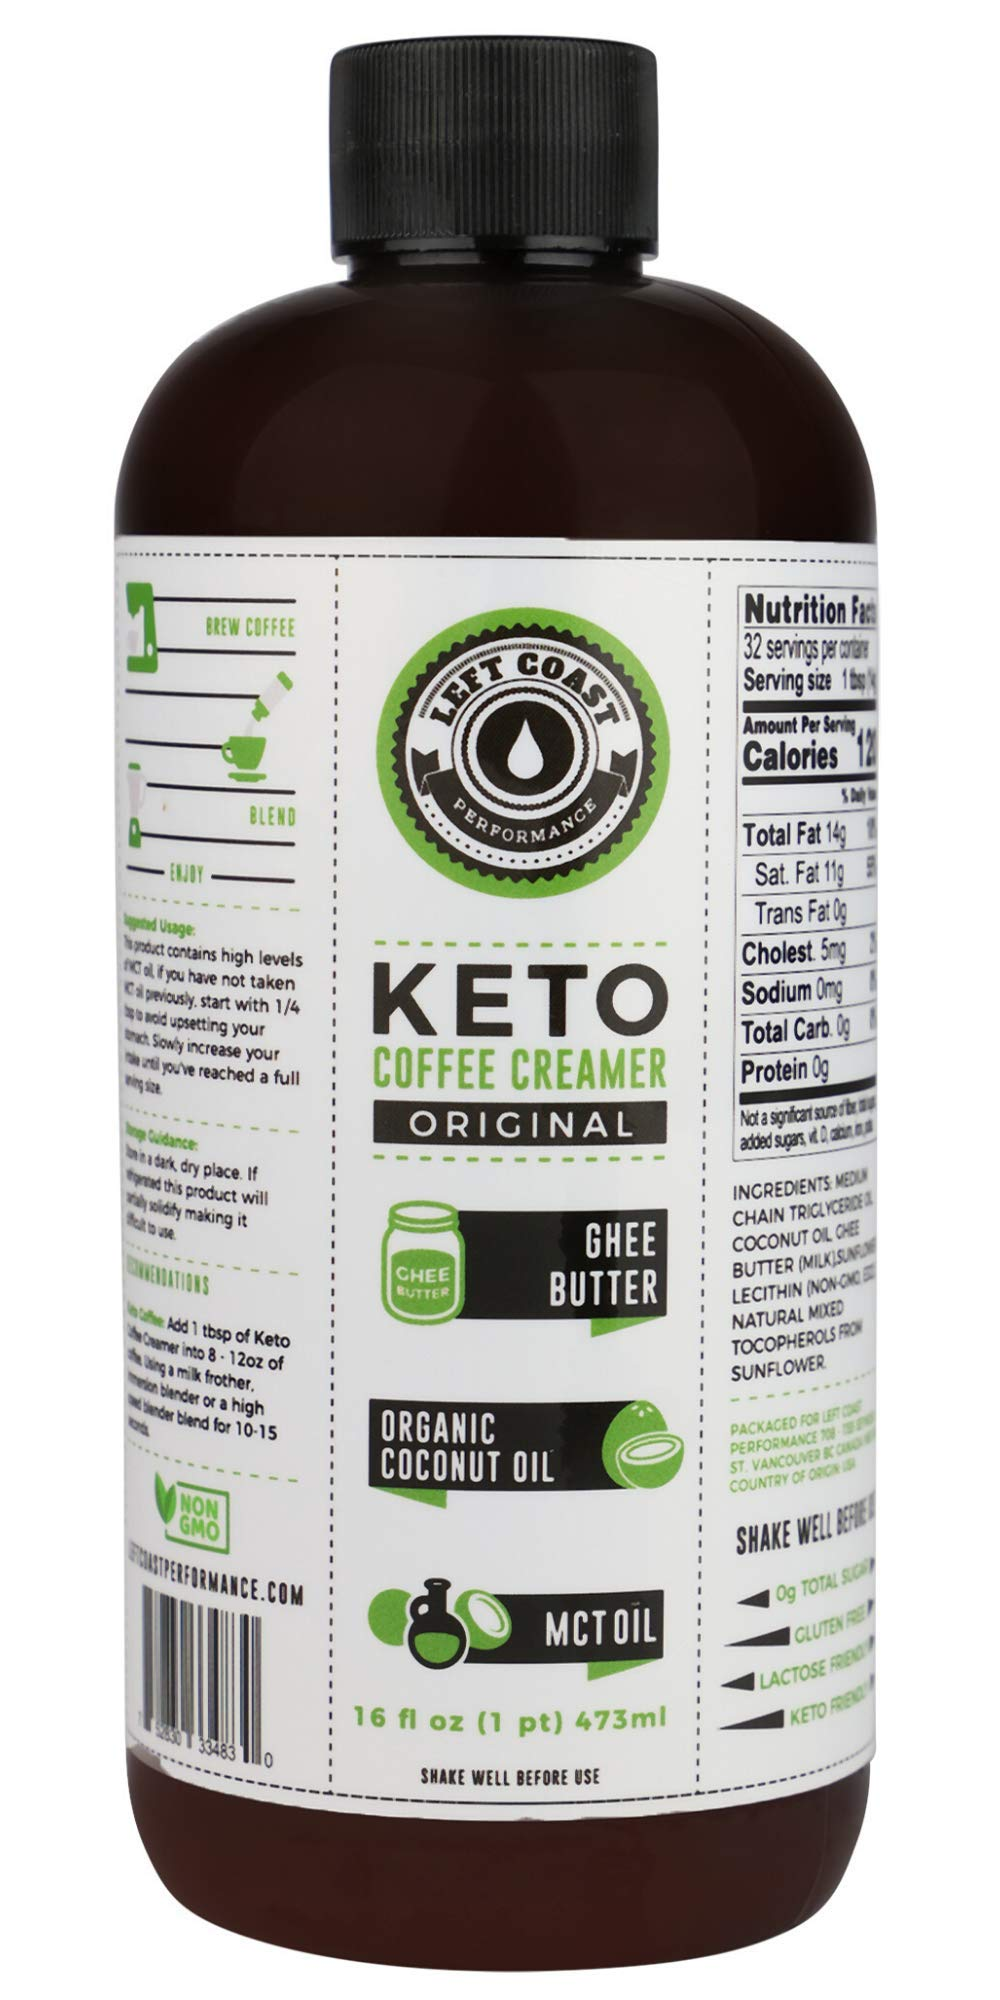 Keto Creamer with MCT Oil. 16oz / 32 Servings. Must Be Blended. No Carb Butter Coffee Booster. Ghee Butter, Organic Coconut Oil, MCT Oil by Left Coast Performance